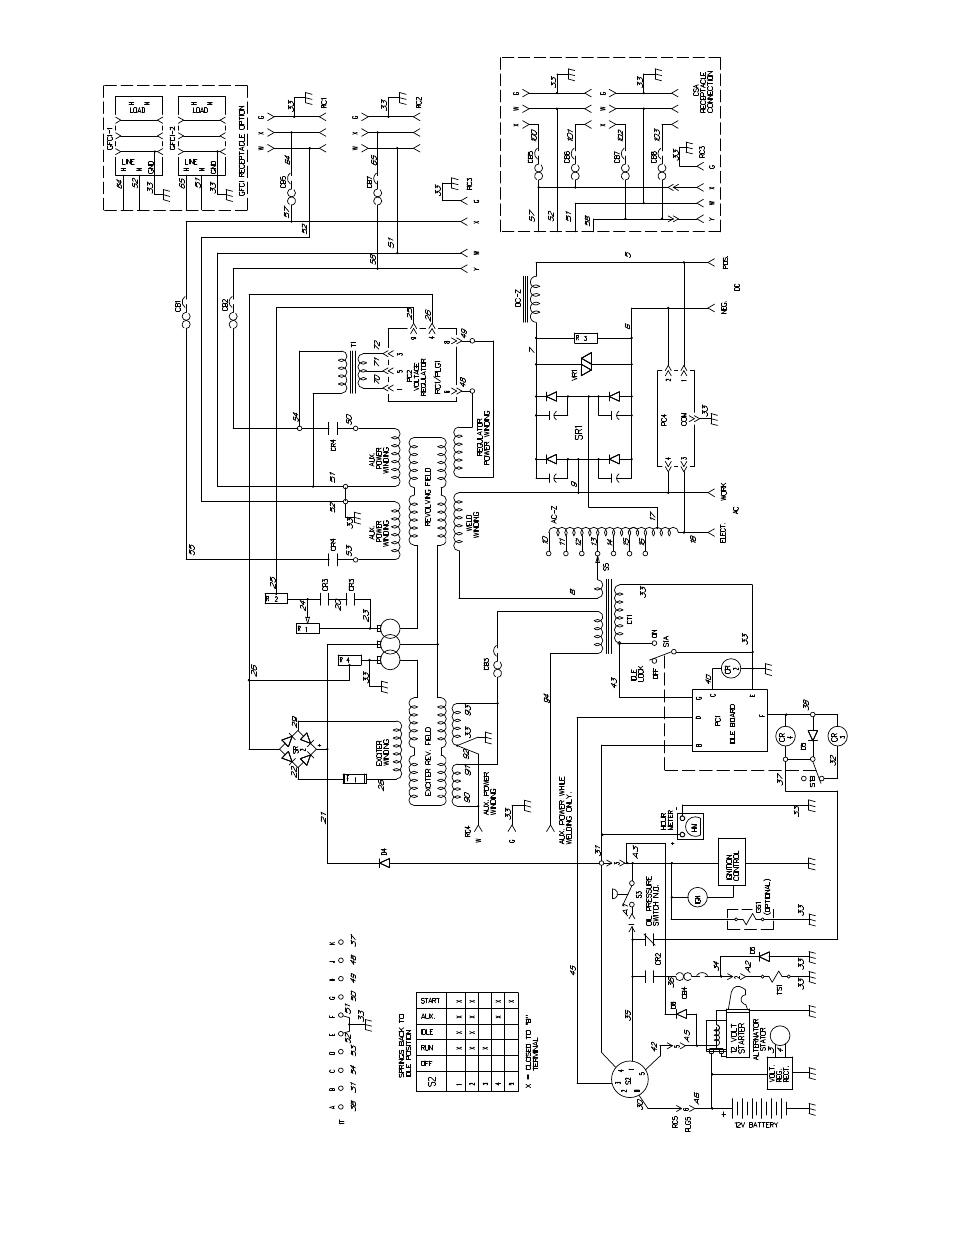 Miller legend wiring diagram free download wiring diagram xwiaw